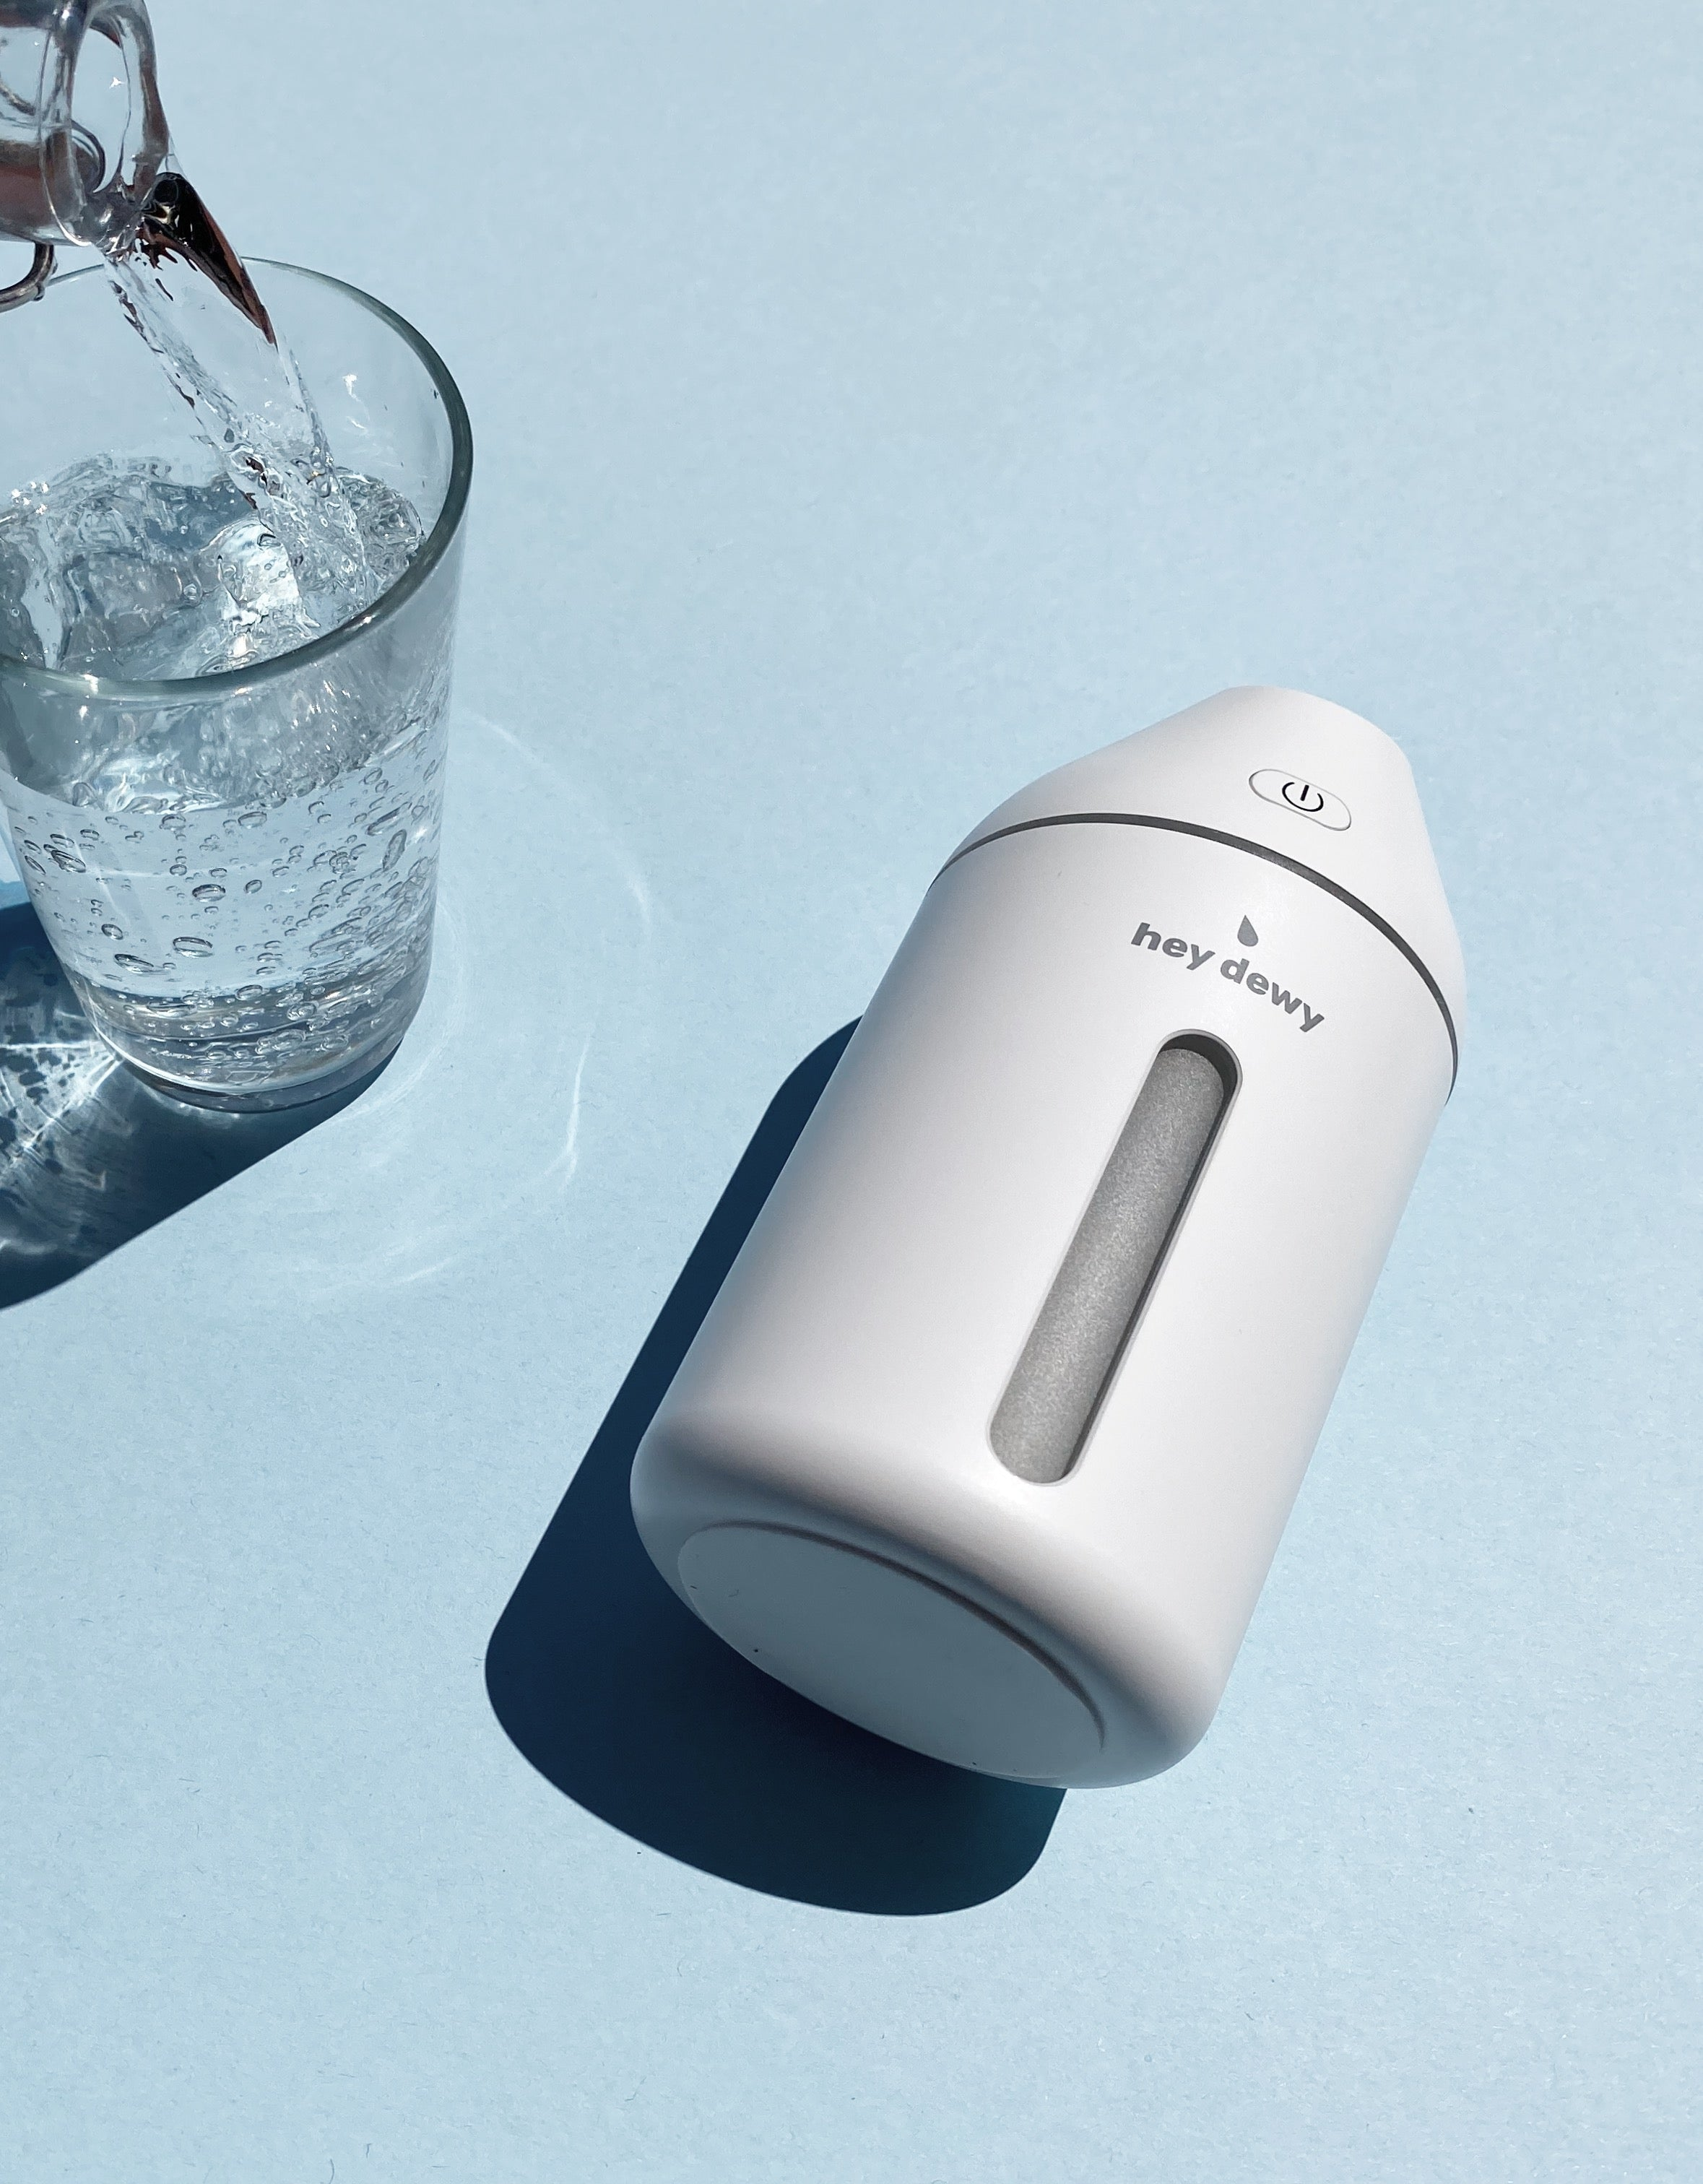 Hey Dewy Portable Facial Humidifier